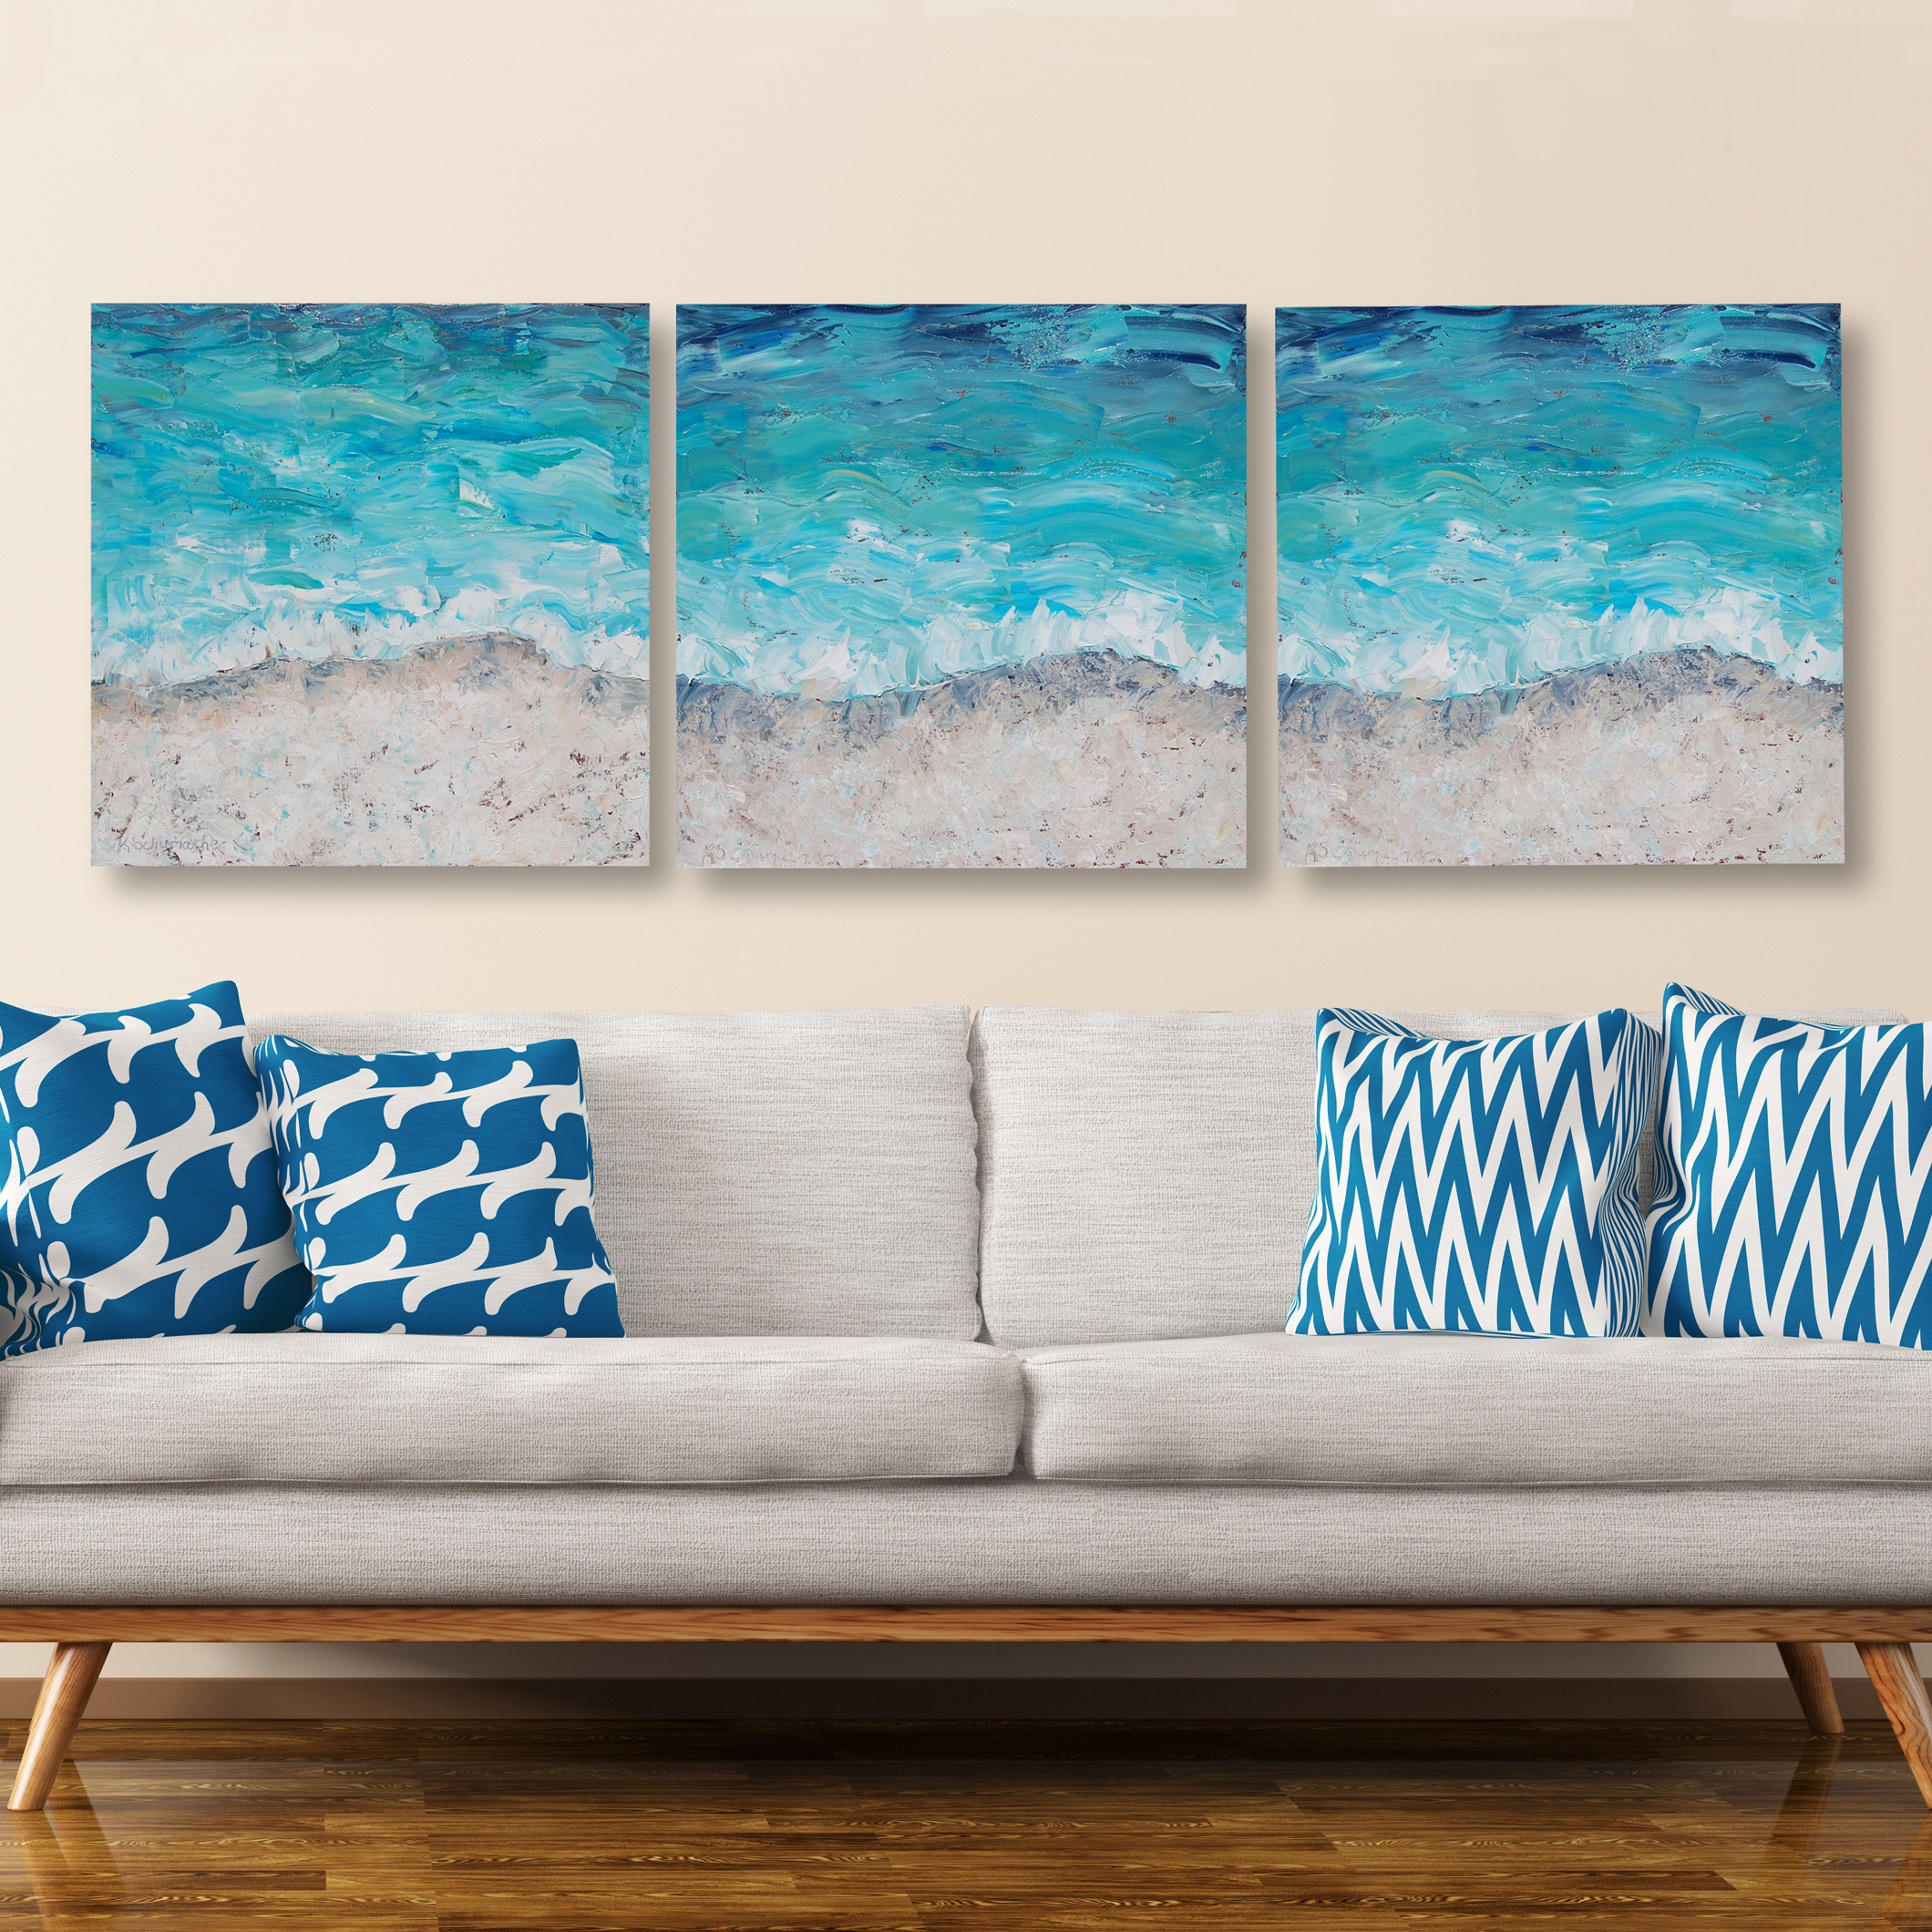 Seashore triptych hung 24×80 for web